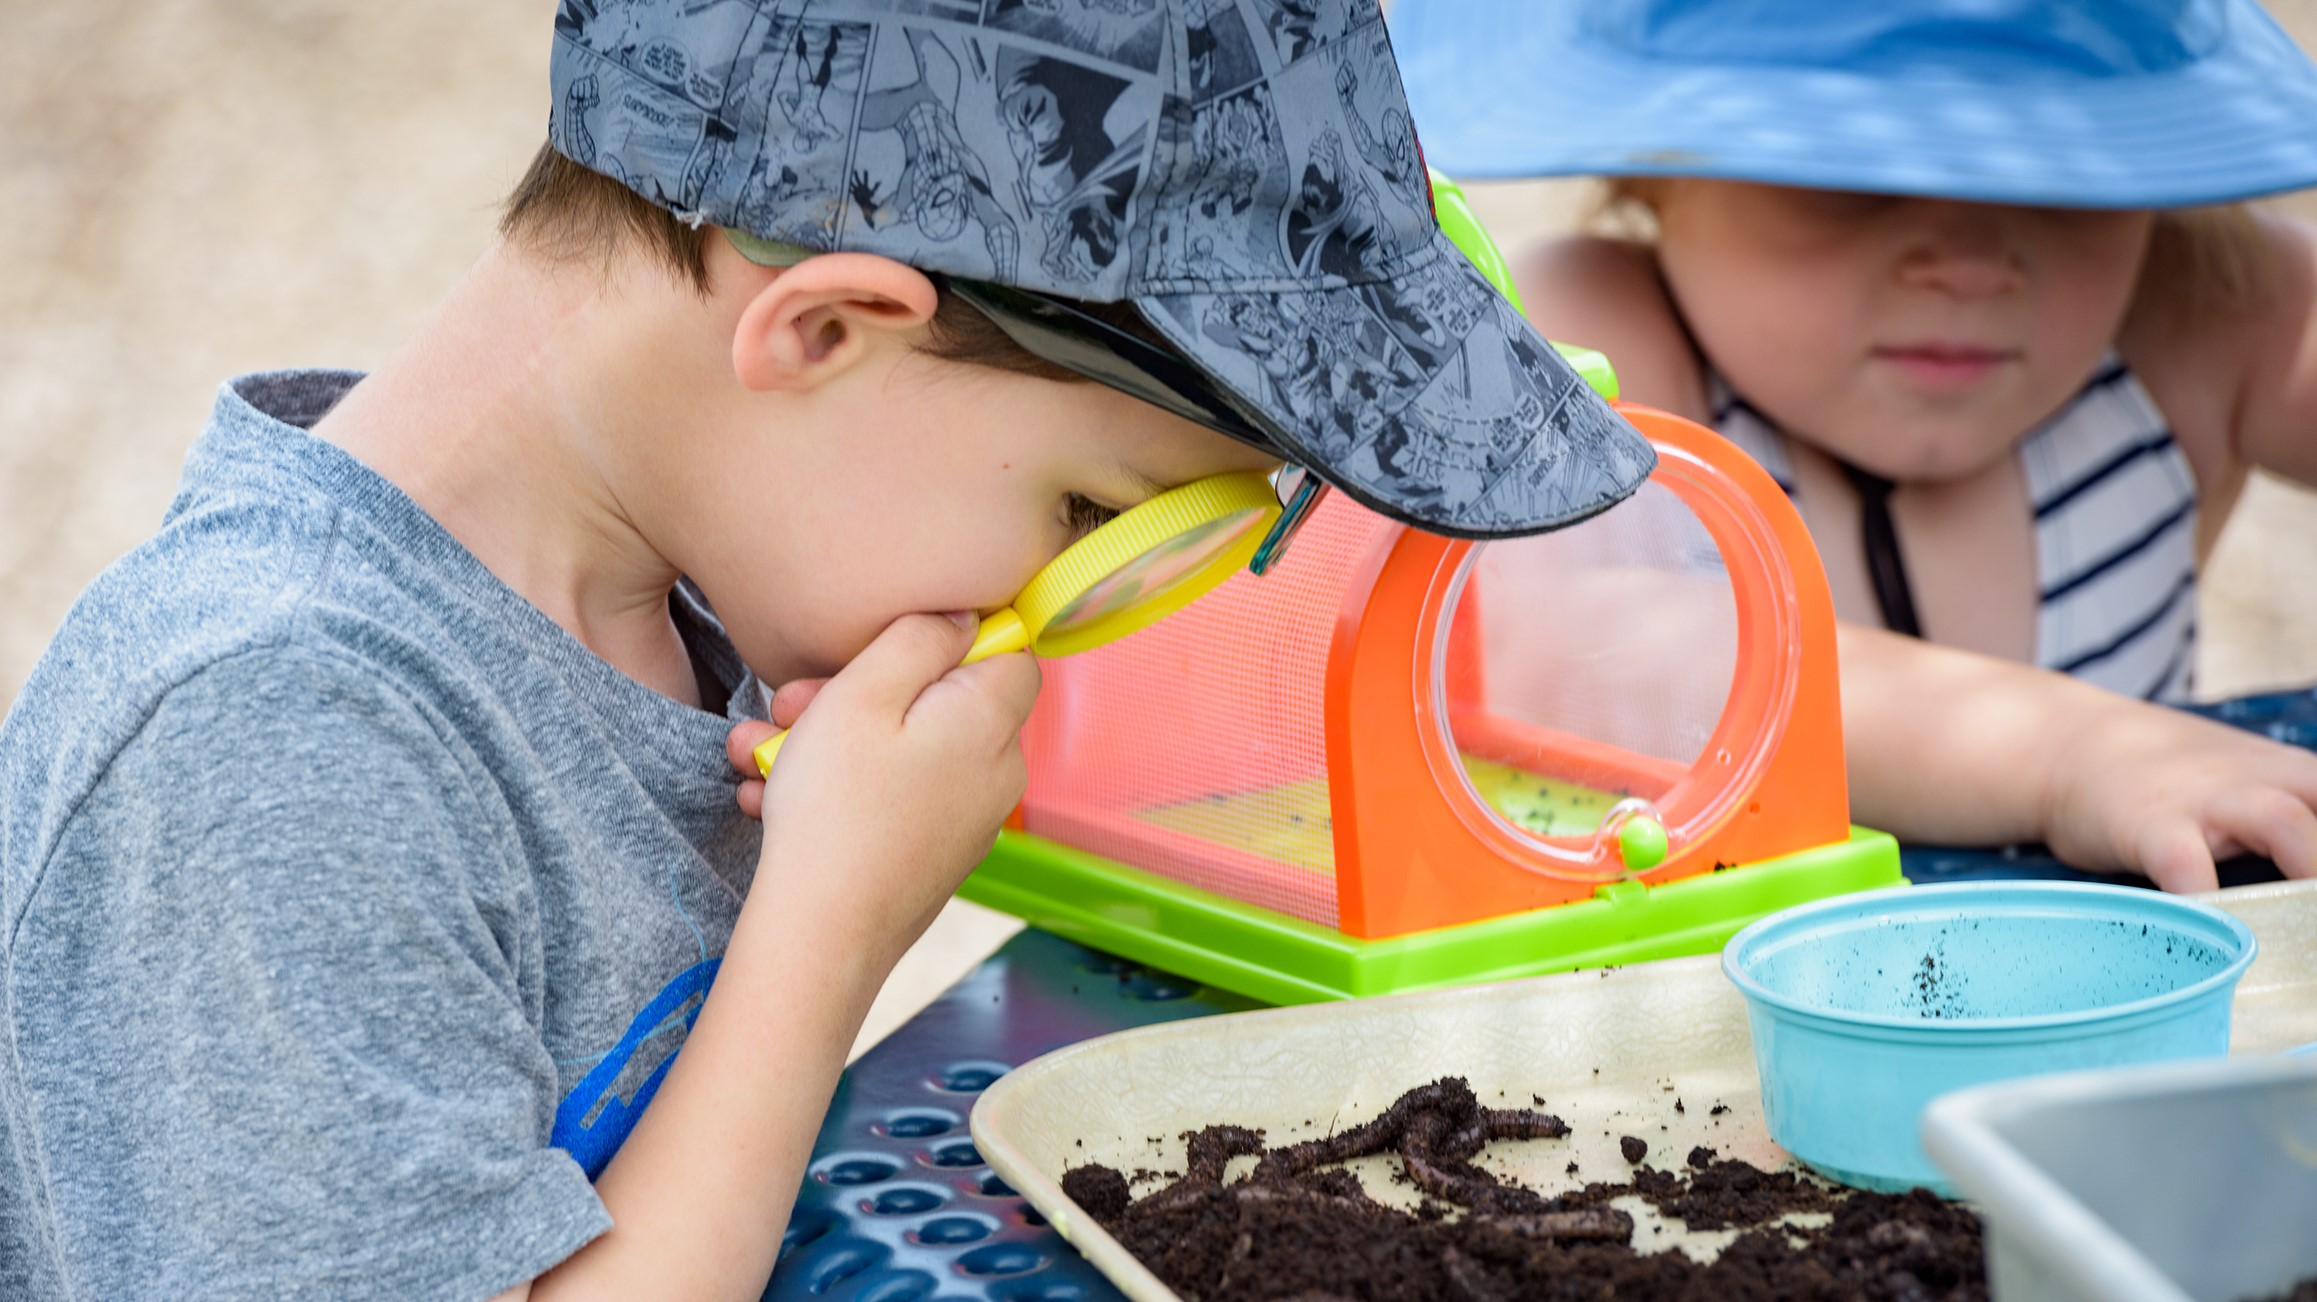 A boy studies earth worms with a magnifying glass during a nature-based activity.